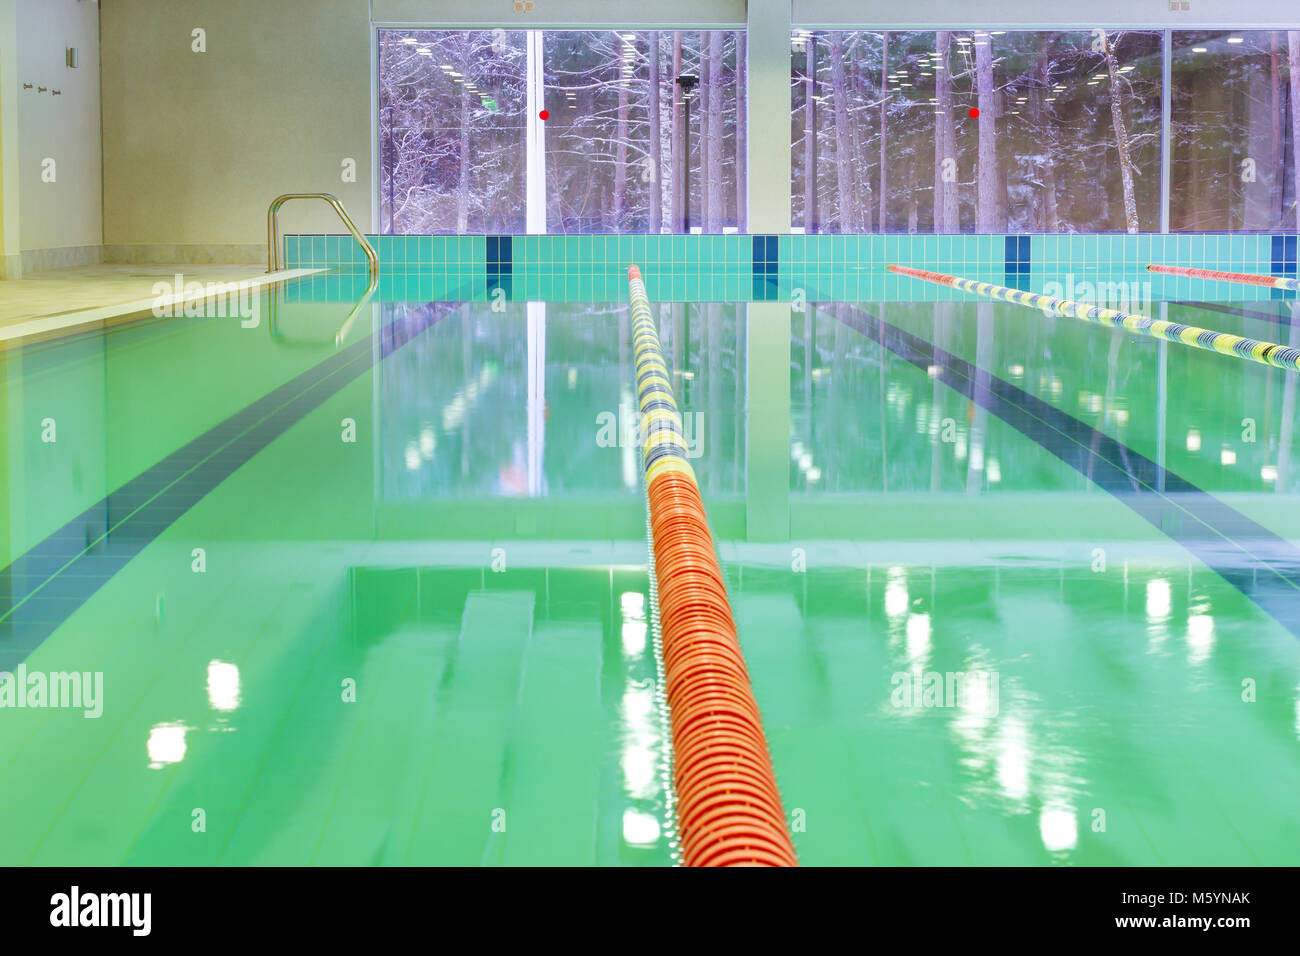 Lap Pool With Marked Lanes Empty Swimming Without People Quiet Standing Water Sports In Indoor Spa And Complex For Pan